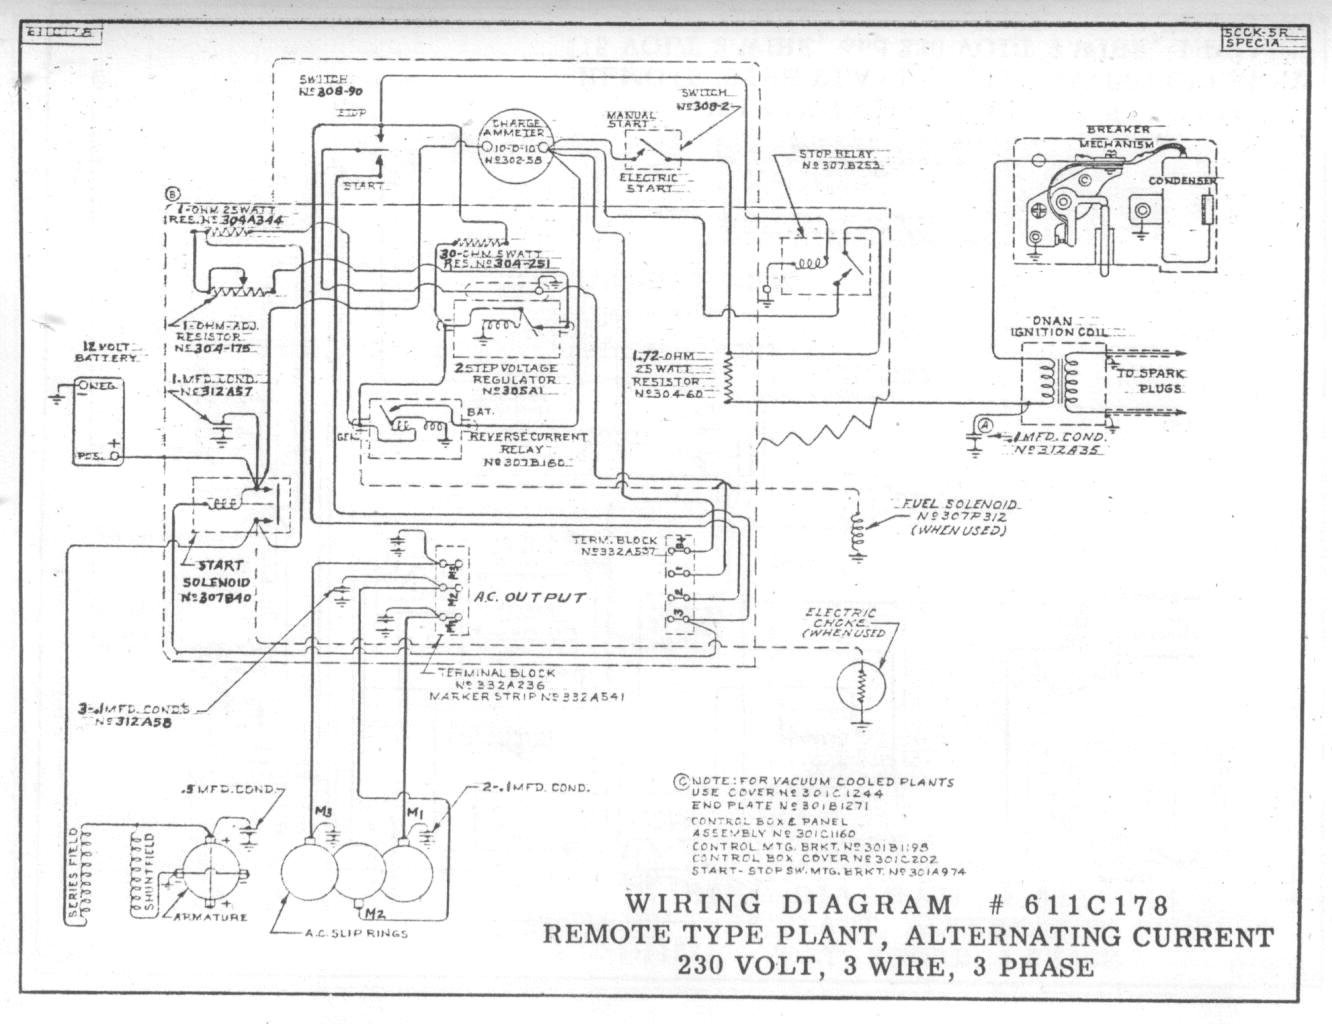 Onan_schematic onan cck wiring diagram lincweld onan cck wiring diagram \u2022 wiring wiring diagram for onan rv generator at readyjetset.co